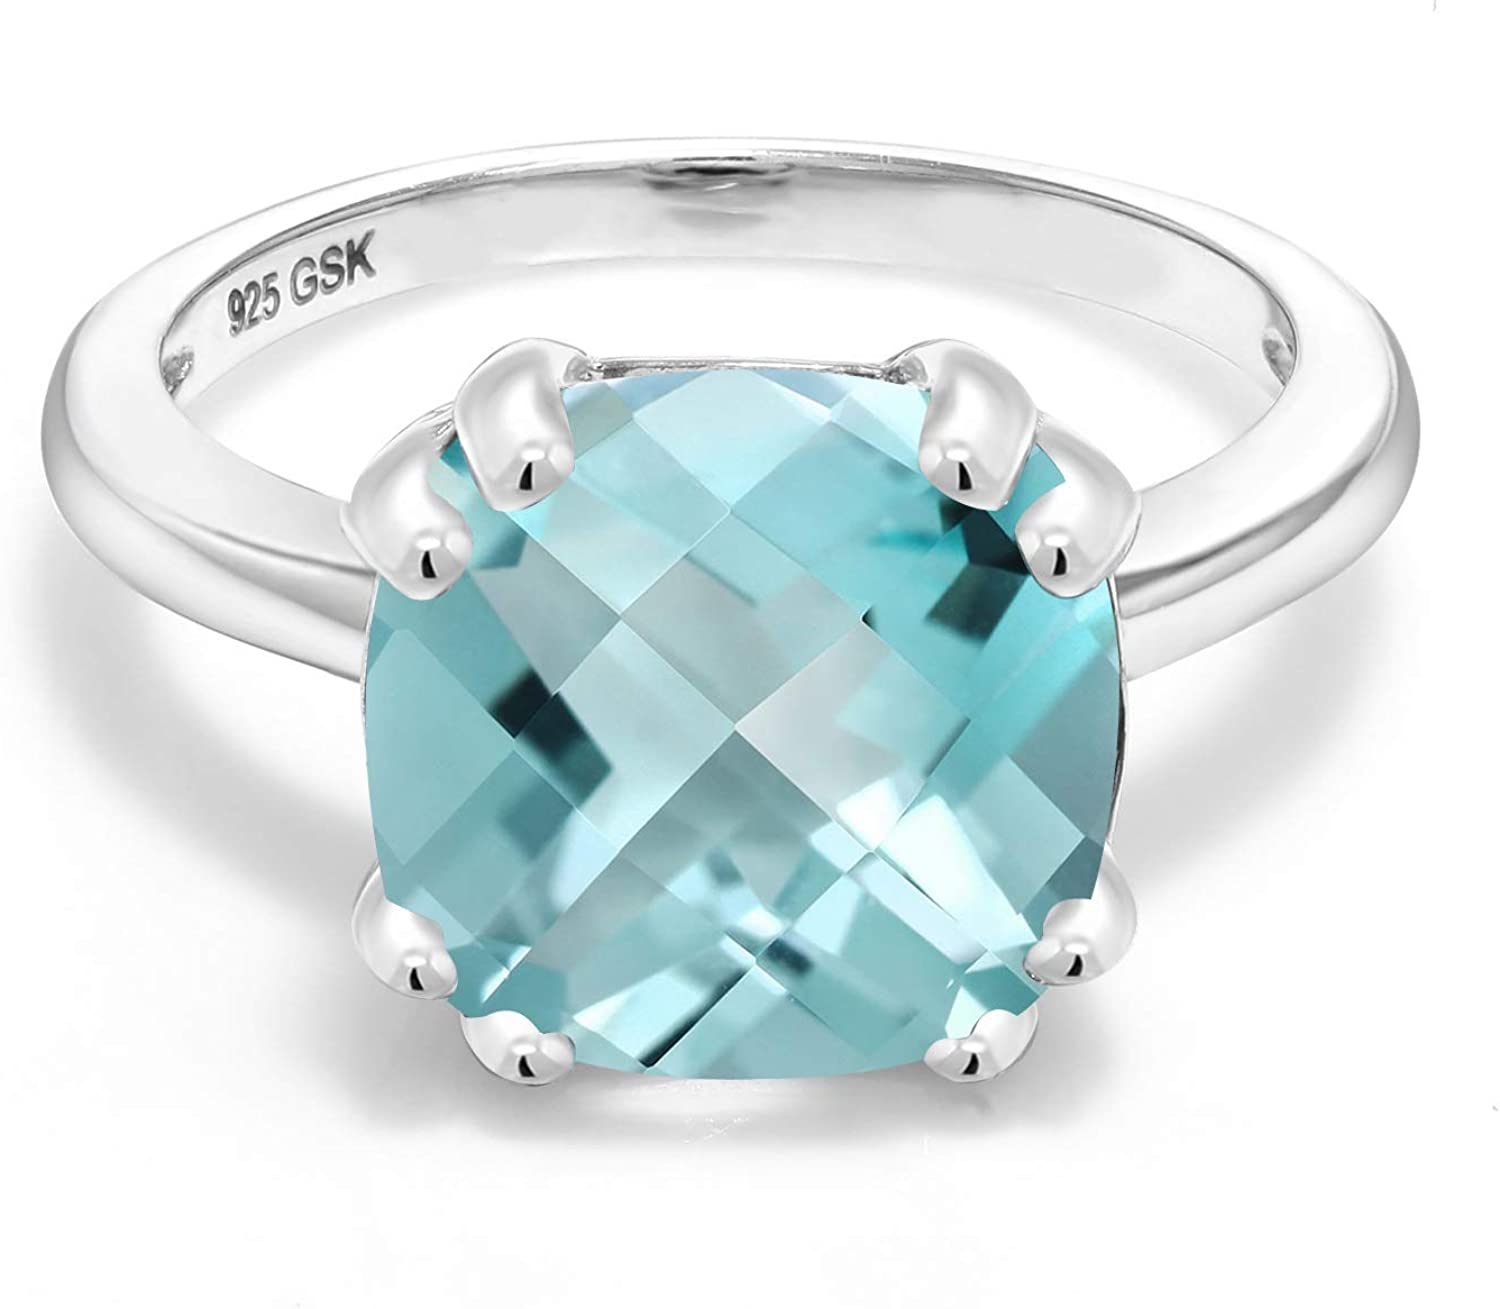 Details about  /Blue Topaz Sterling Silver Ring Natural Gemstone Size 4 5 6 7 8 9 10 11